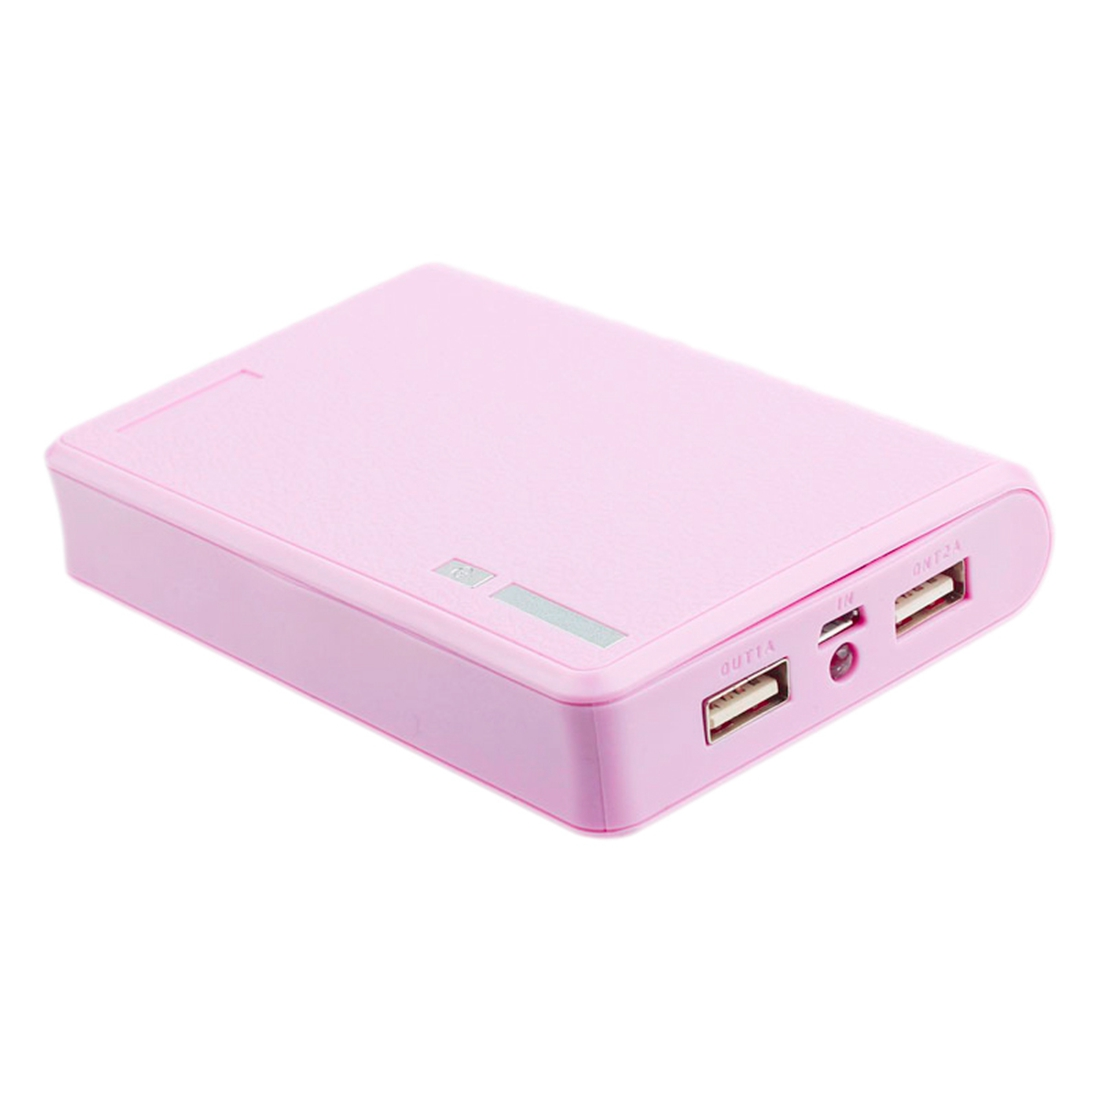 Portable USB Charger 5V 2A 18650 Power Bank Battery Box For iphone6 Smartphone Colour:Pink